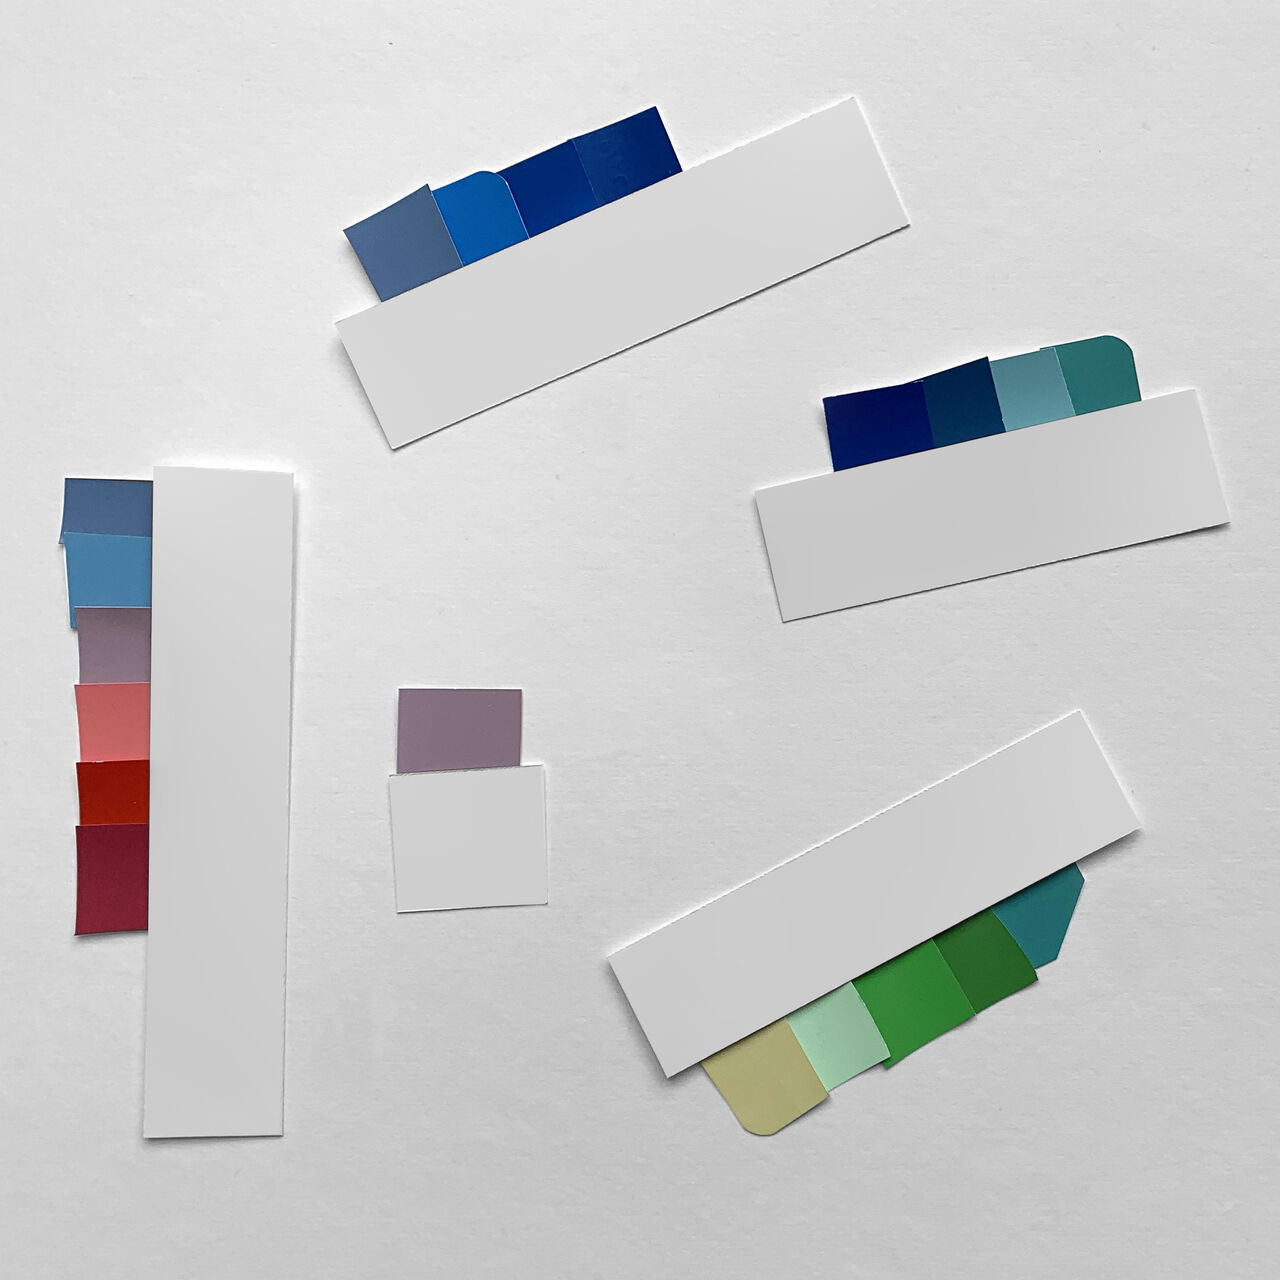 Tabs of different colours against a white background. Mainly blues and greens.